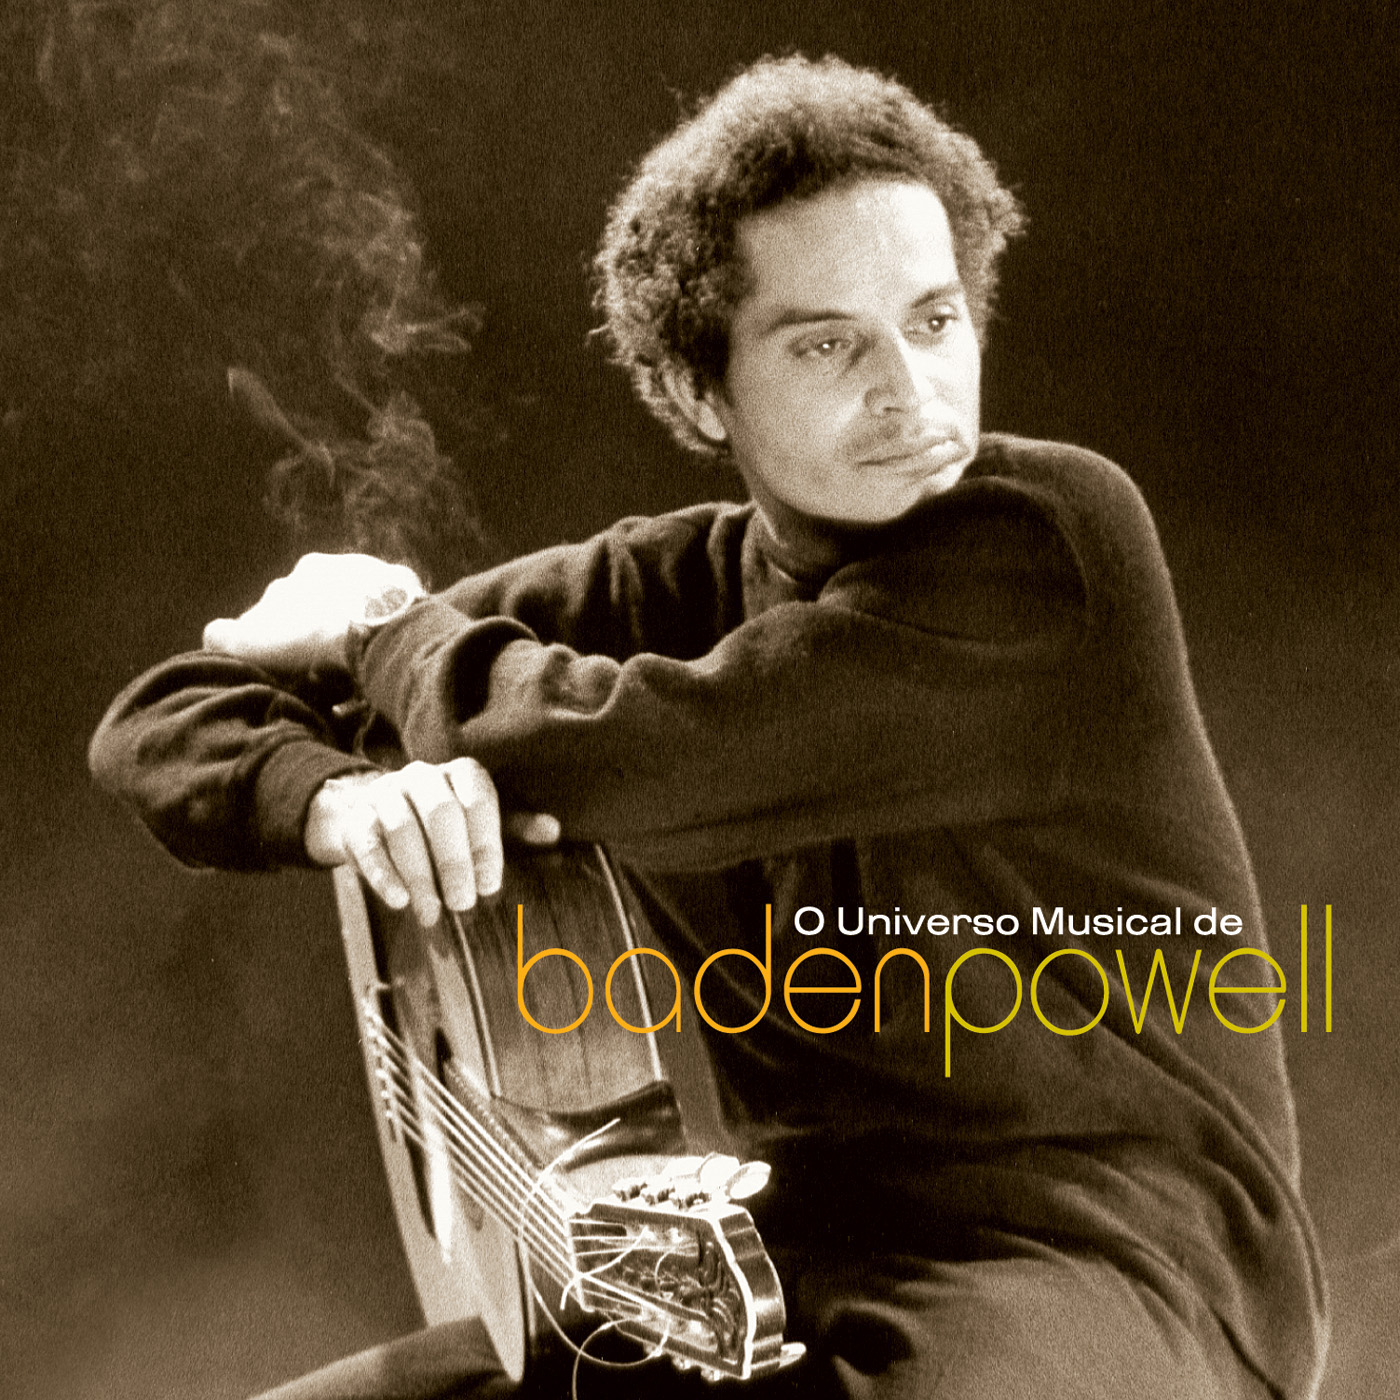 O Universo Musical de Baden Powell by Baden Powell cover